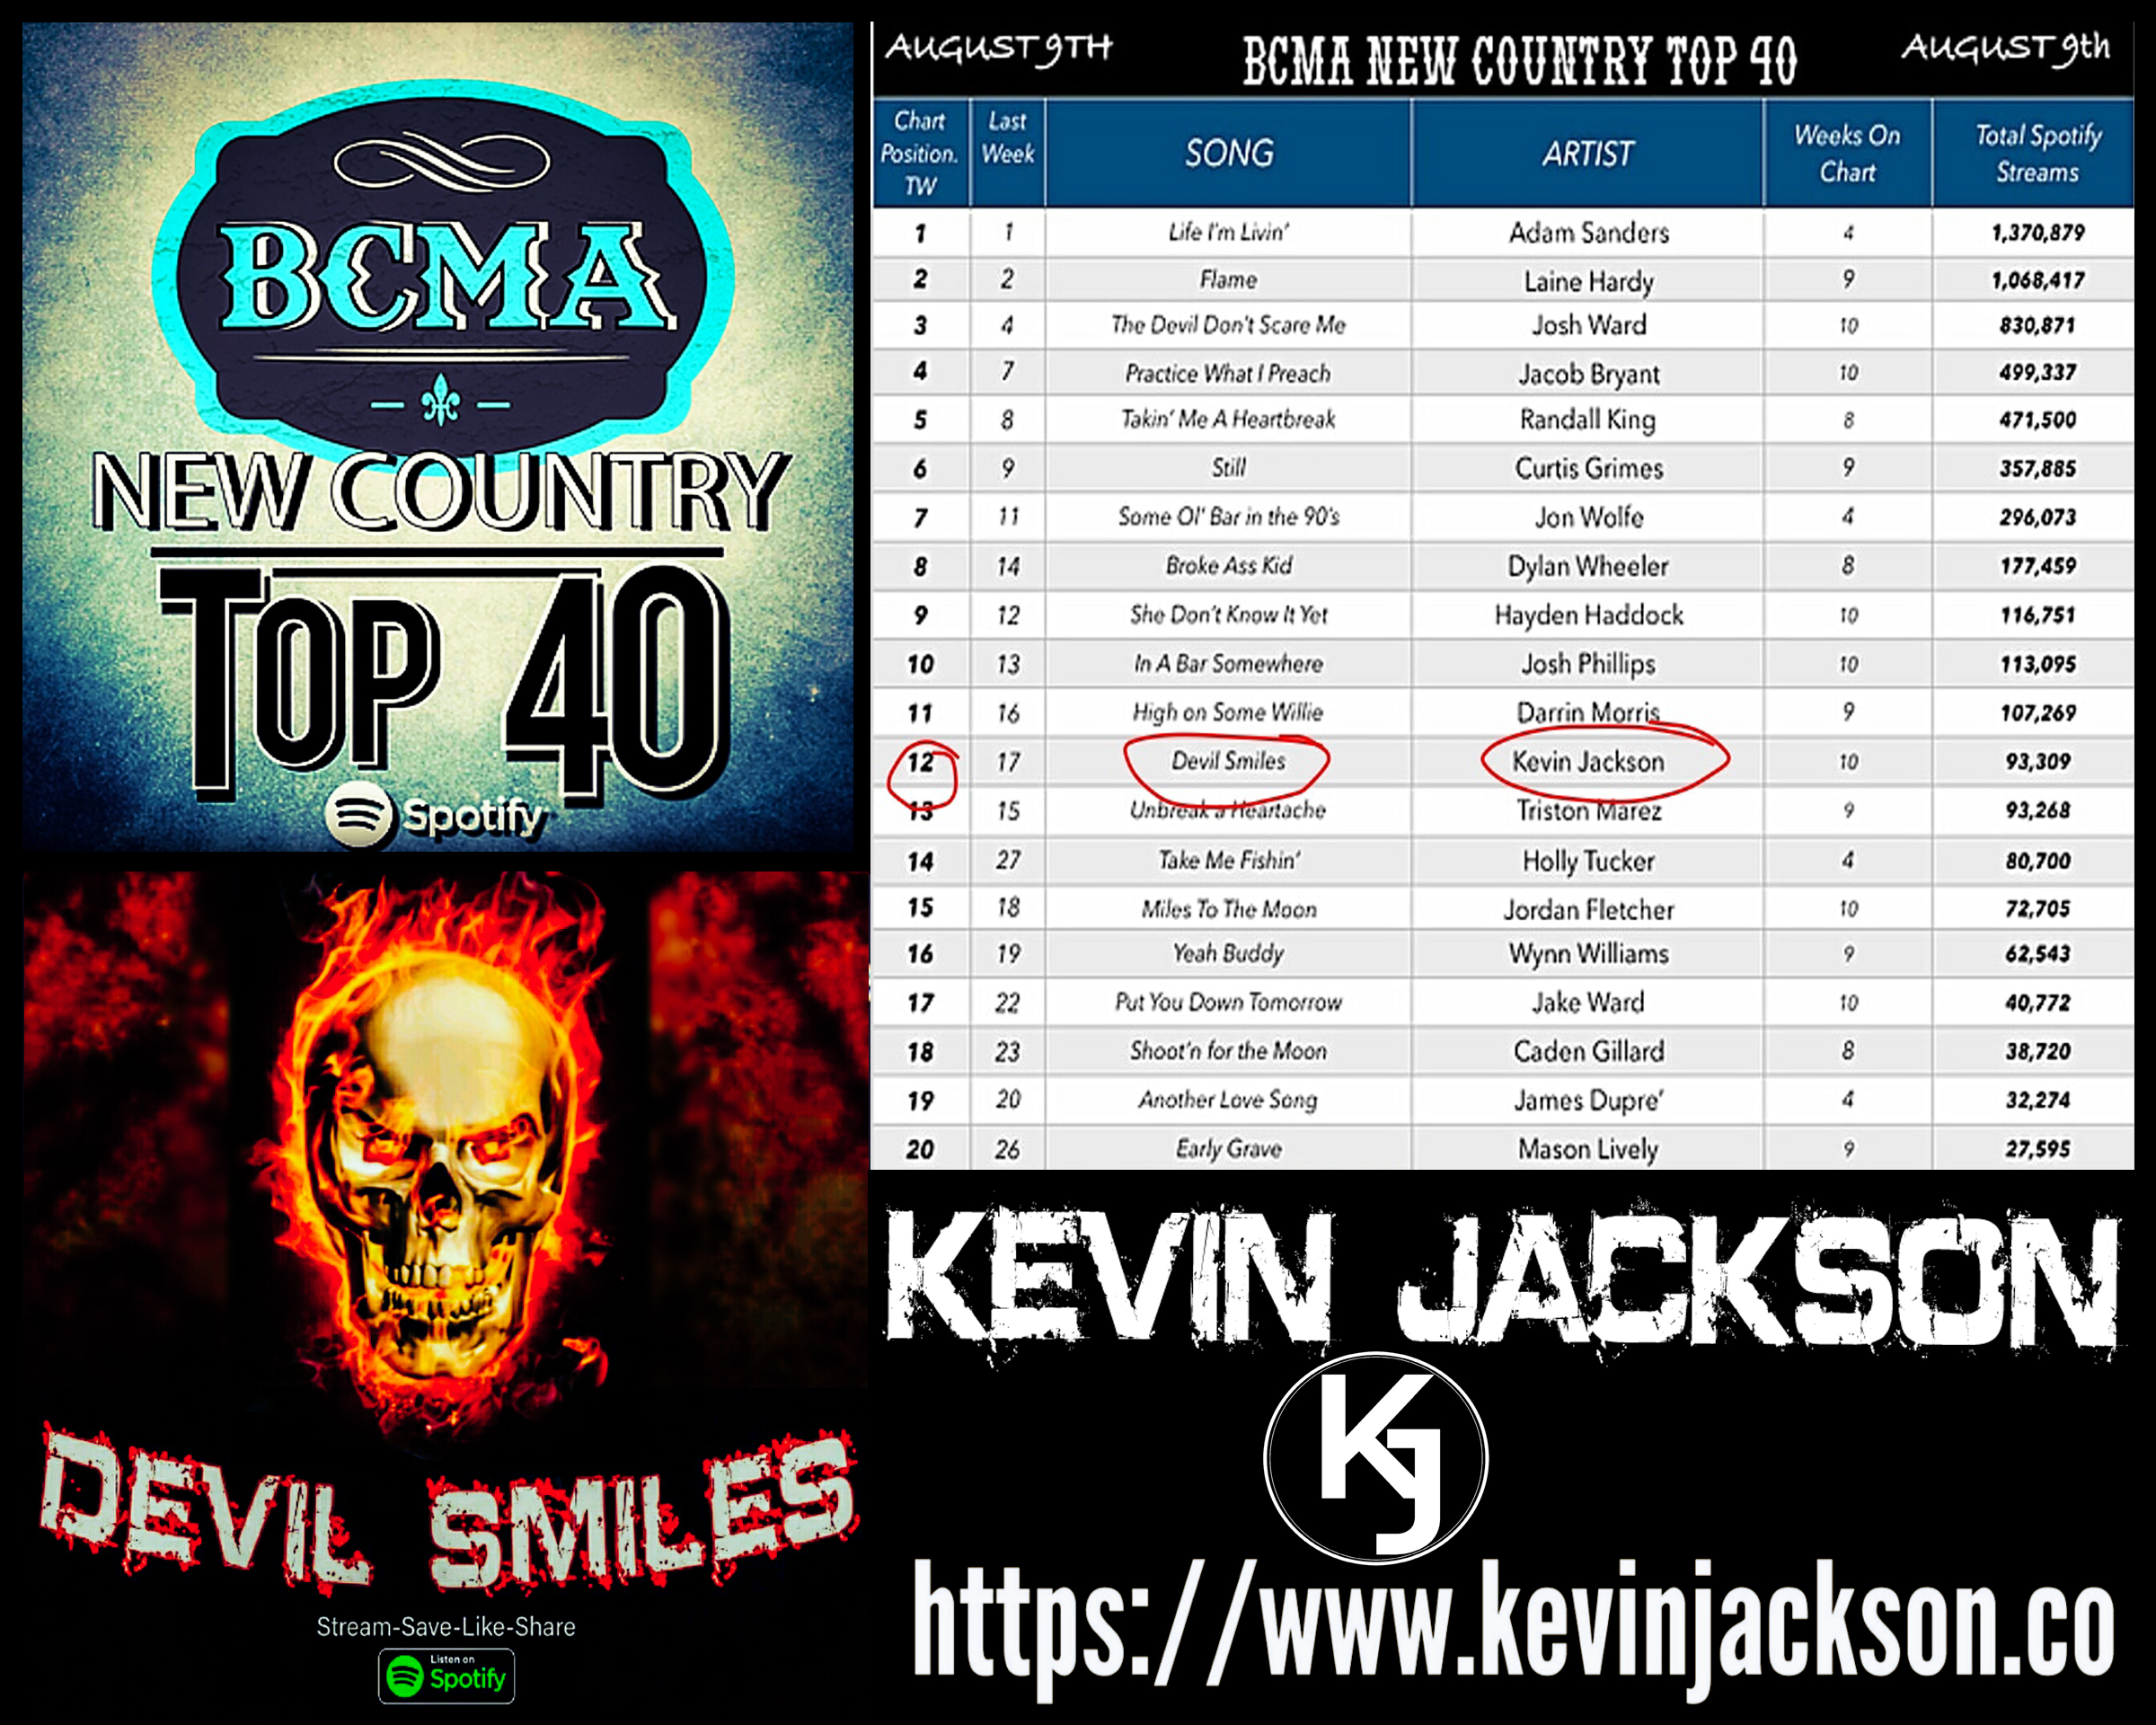 BCMA AUG 9TH CHART copy